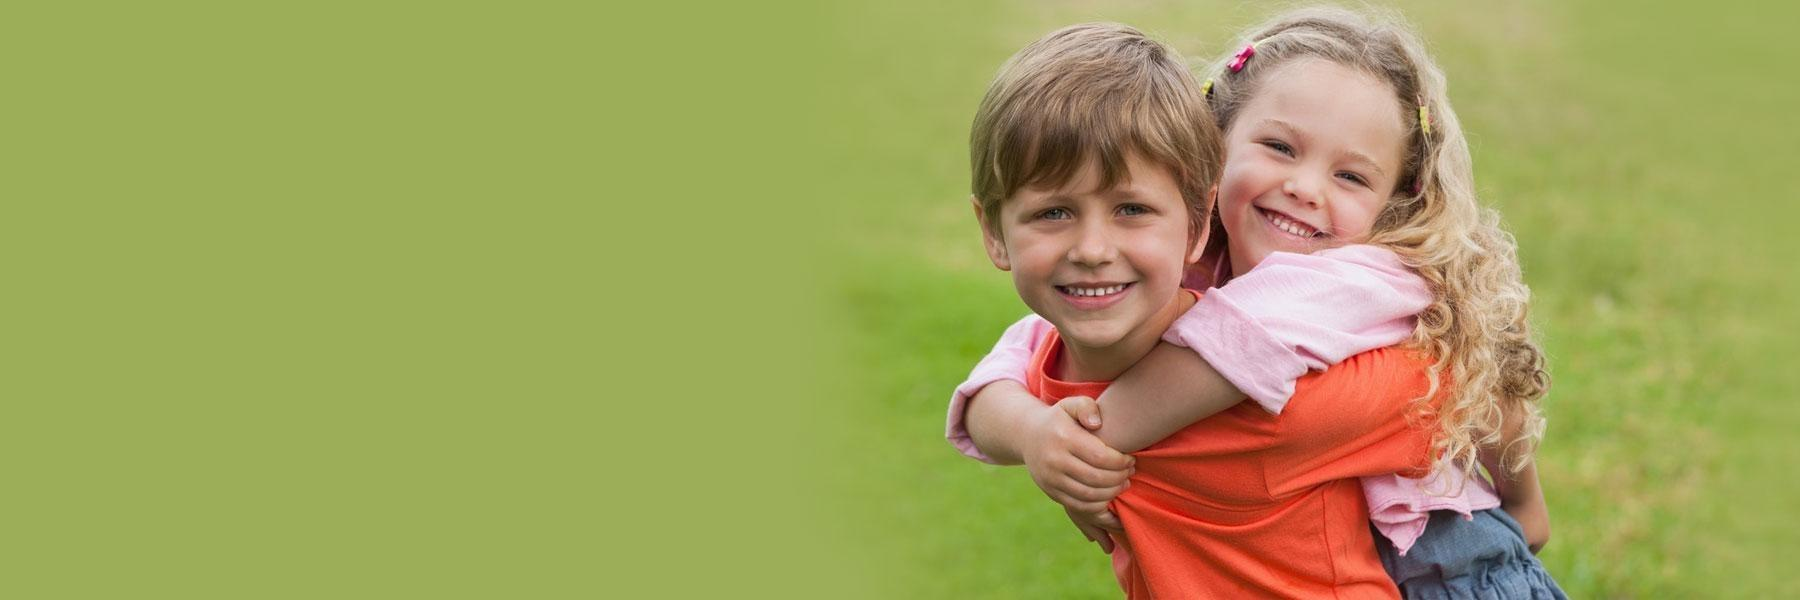 Two Children | Preventative Dentistry for Kids Palos Heights